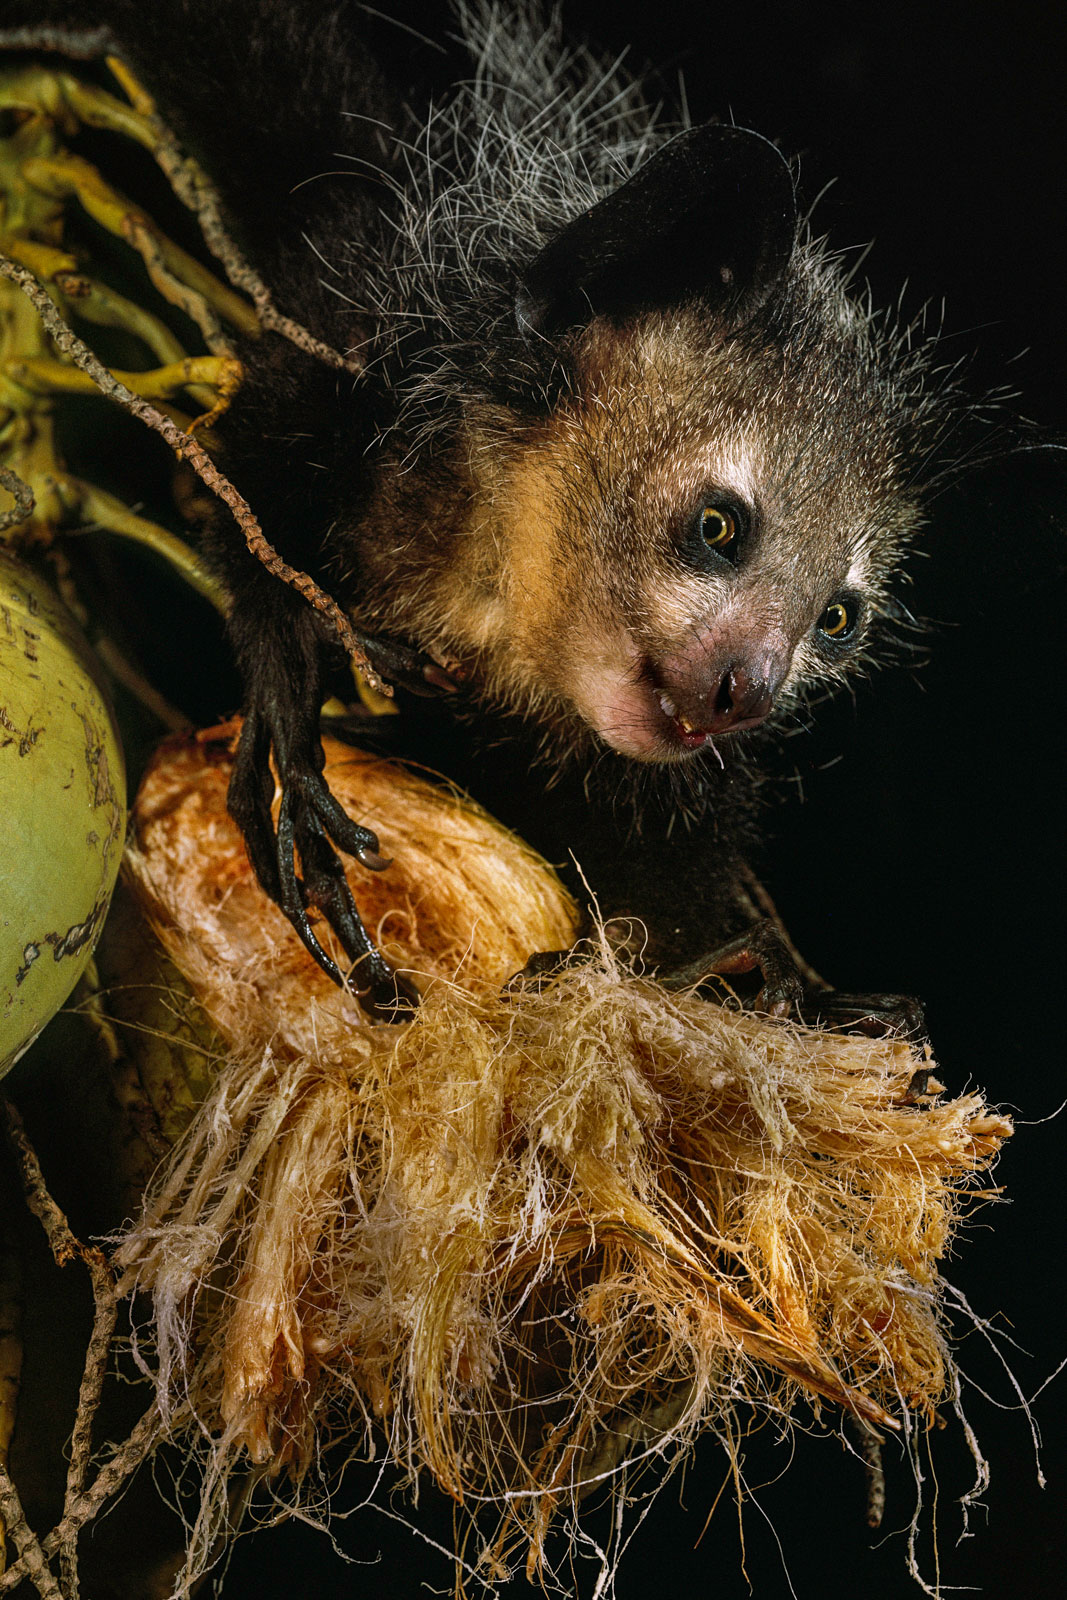 Aye-aye feeding on coconut, Madagascar